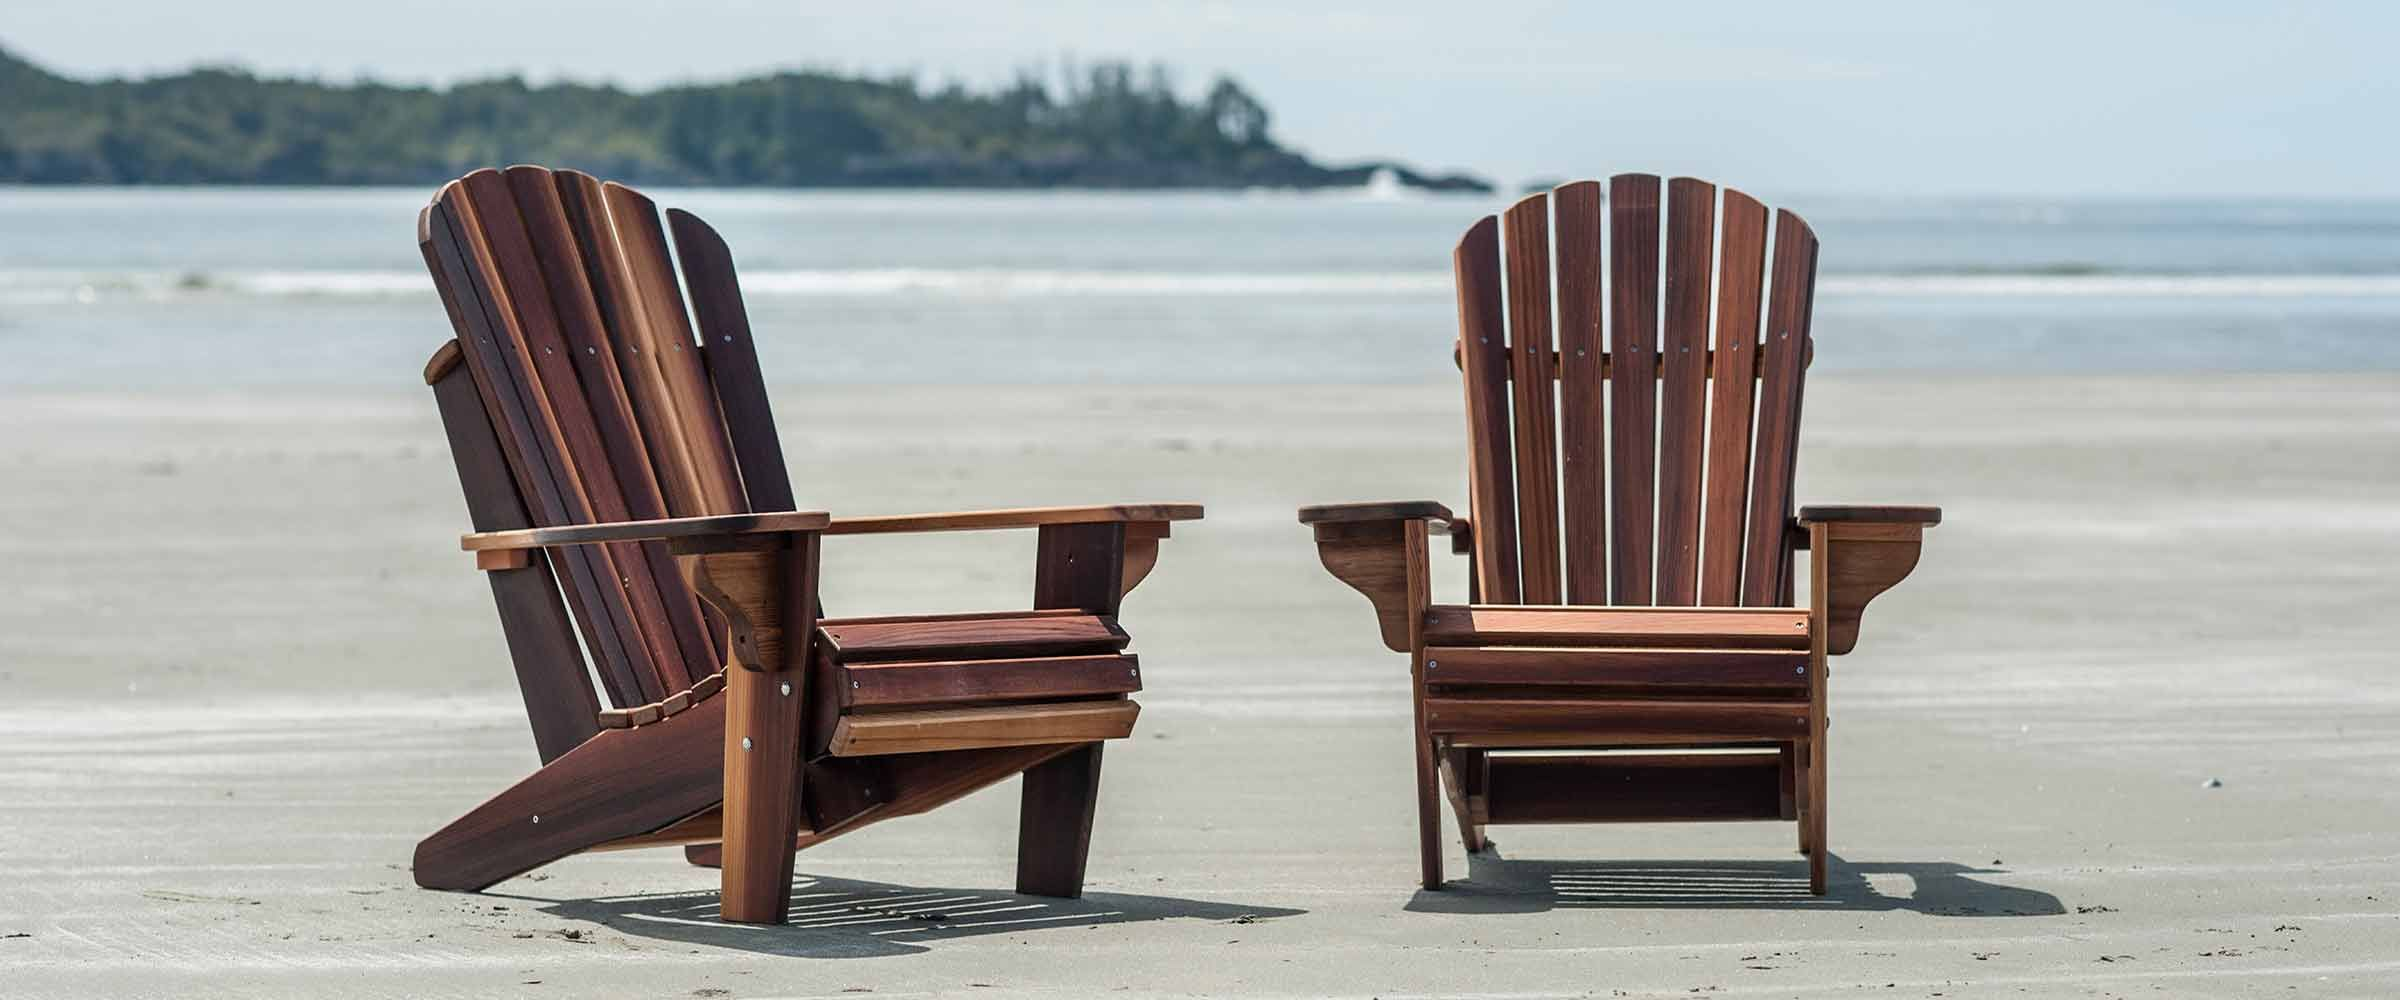 Adirondack Cedar Chairs From Tofino Cedar Furniture For The Back Yard